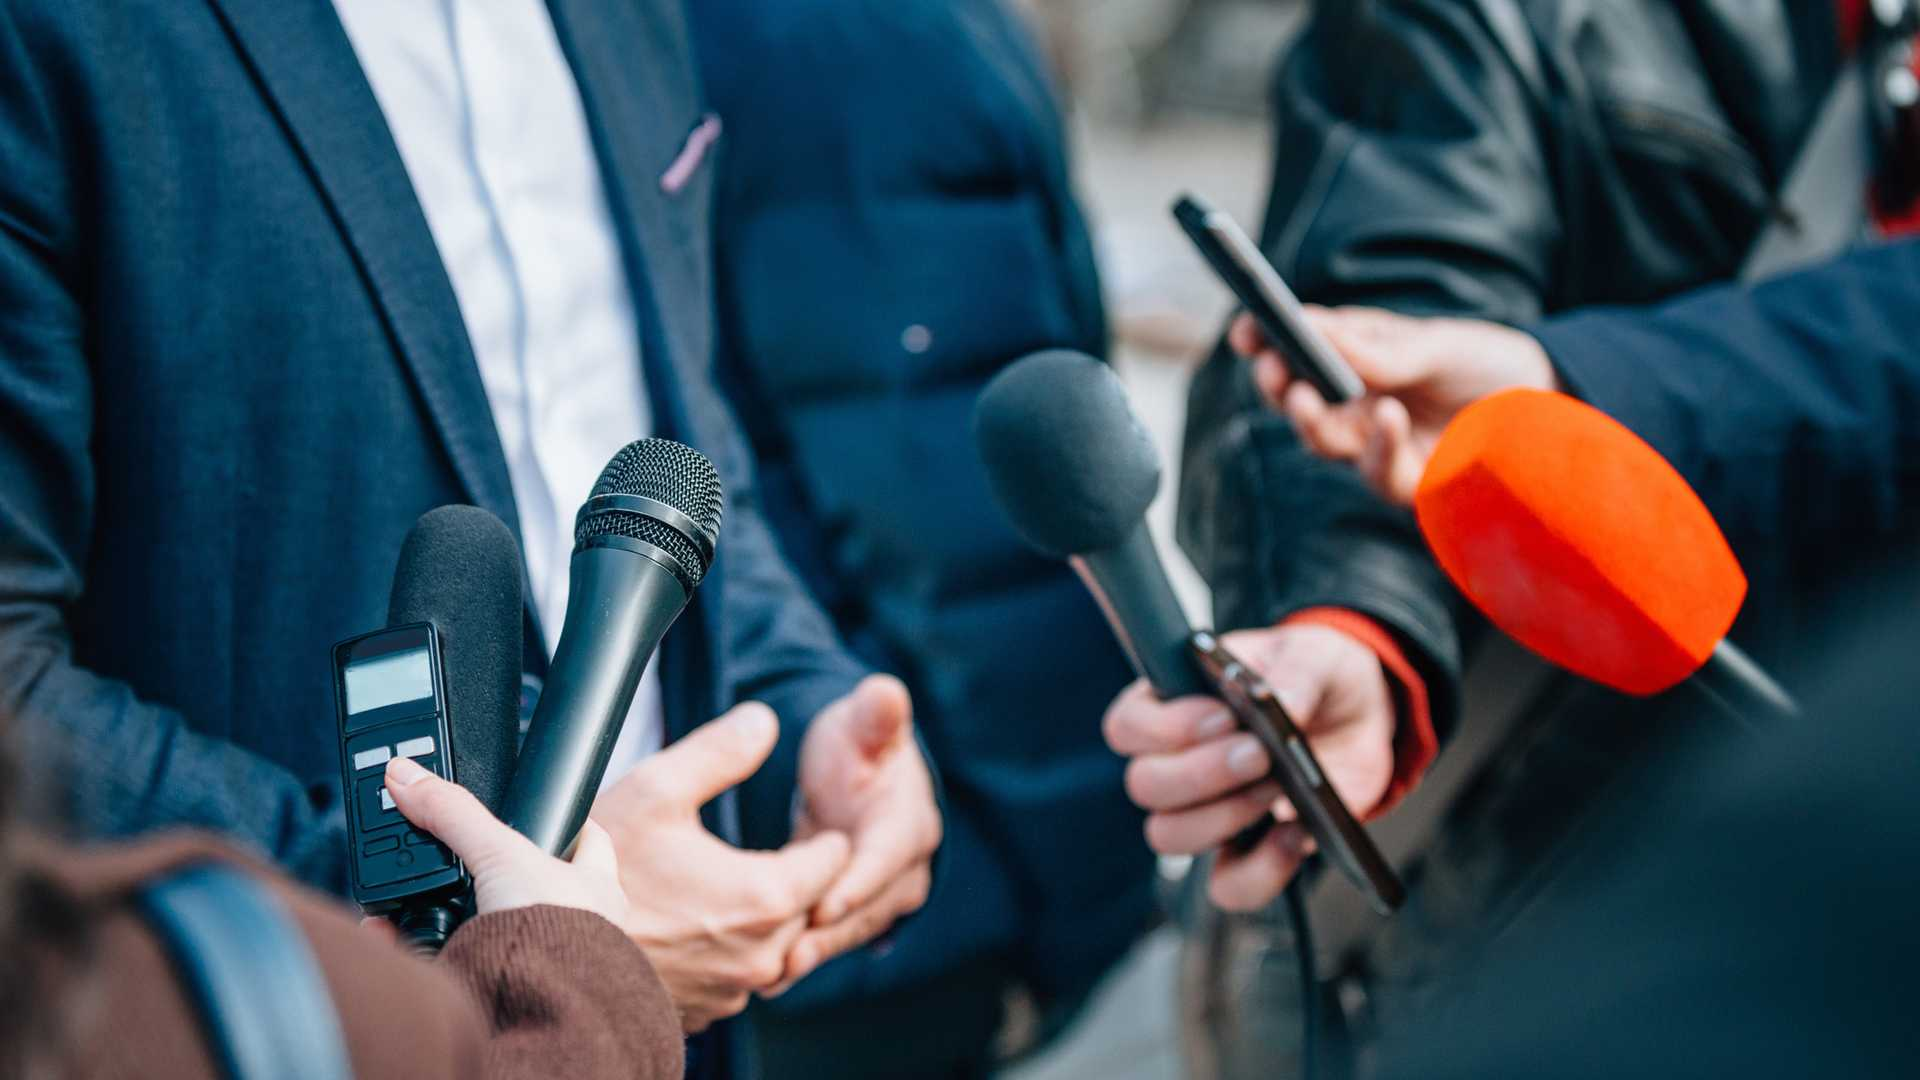 Business man speaking to reporters close up on microphones and hands